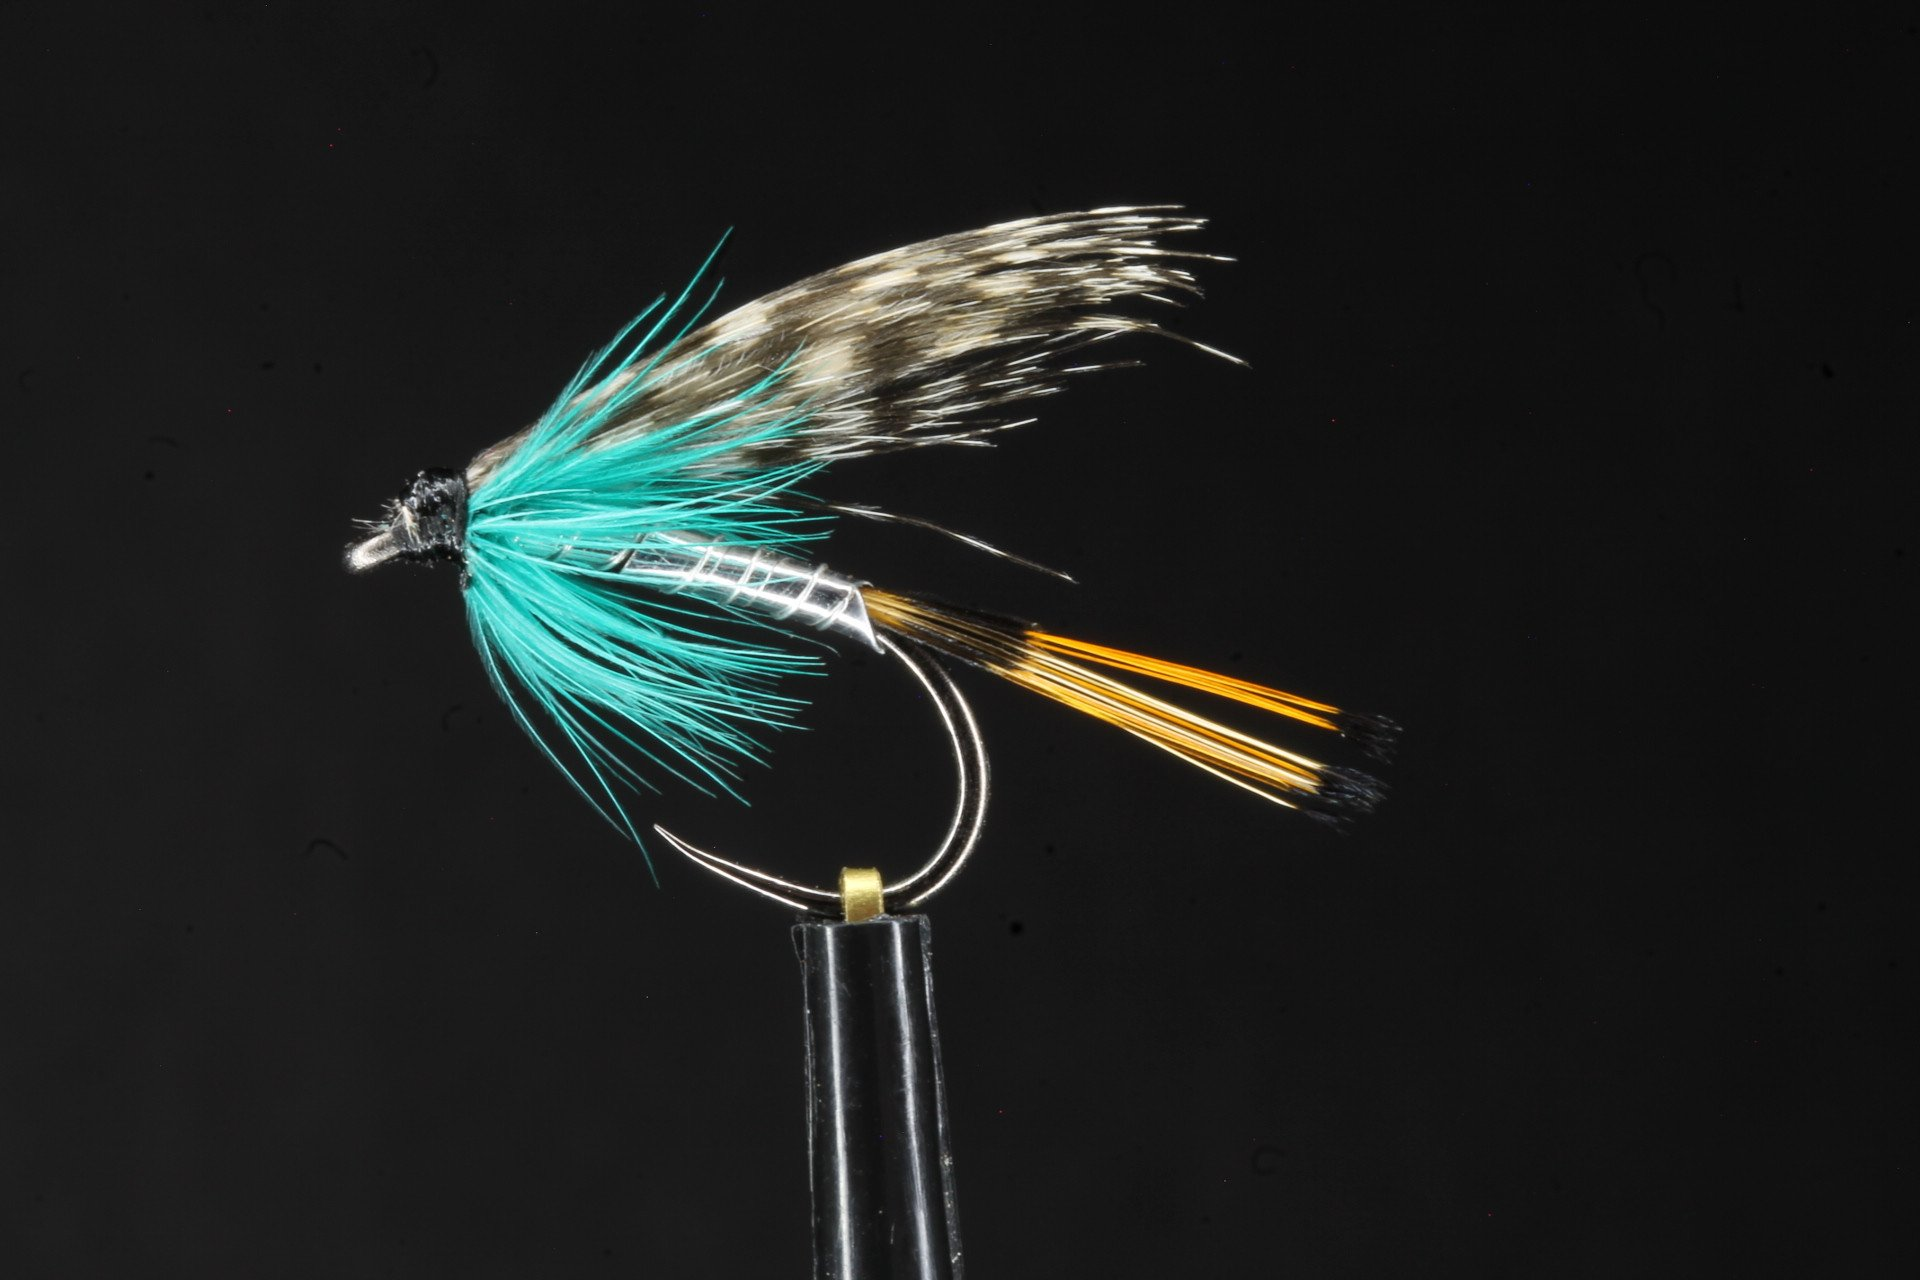 Teal Blue and Silver Wet Fly